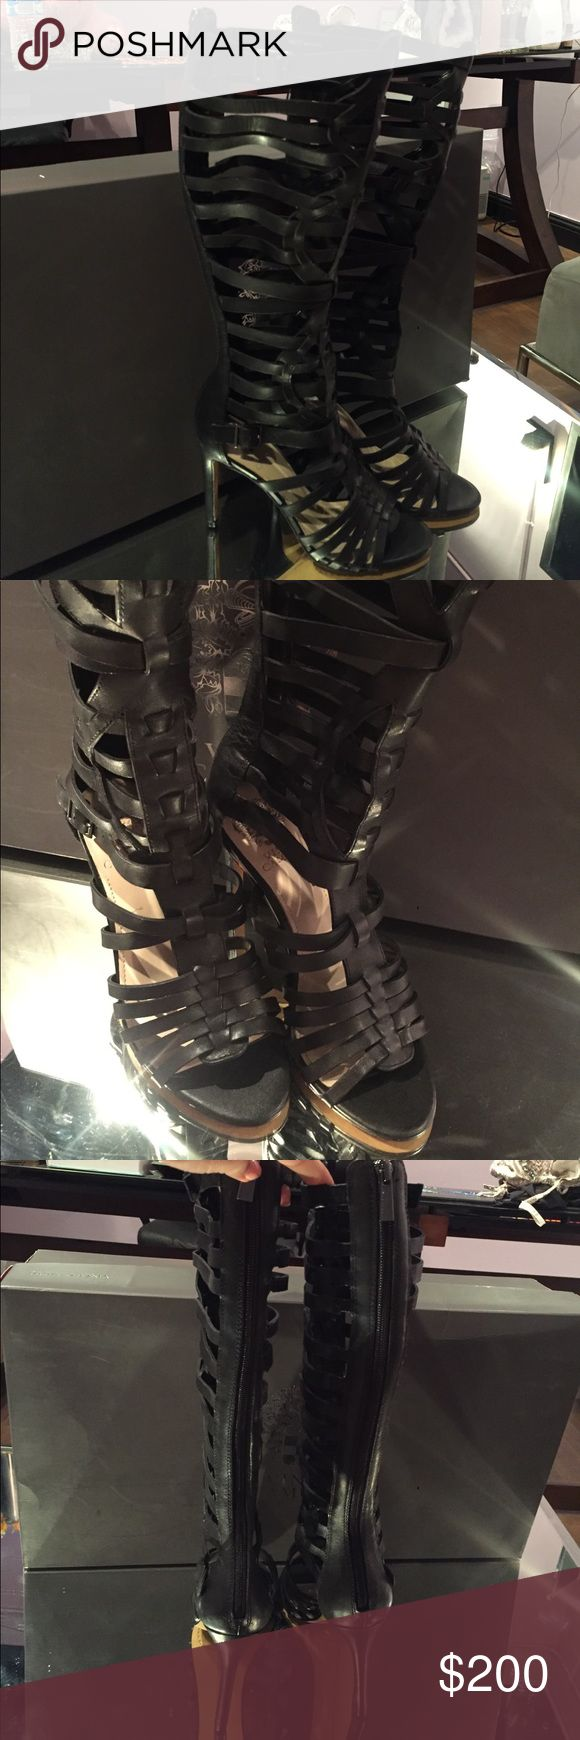 🖤 Bimce Camuto Kase Gladiator Boots ✨ On Consignment ✨ Beautiful leather gladiators never worn in new in box condition! Gorgeous. Size 7 Vince Camuto Shoes Lace Up Boots